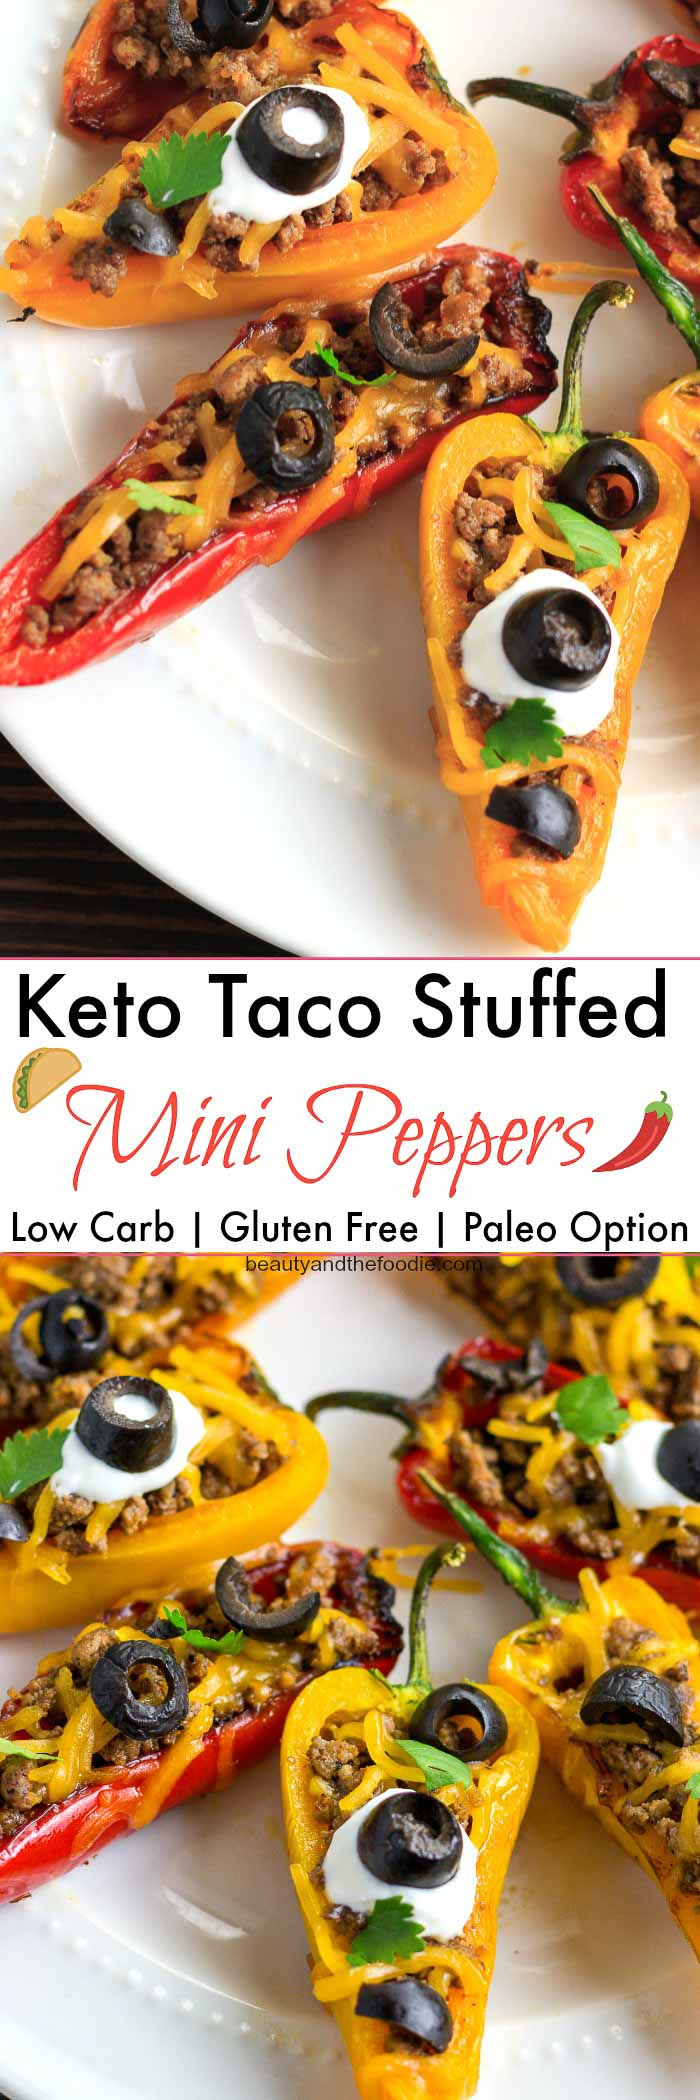 Keto Taco Stuffed Mini Peppers Beauty And The Foodie